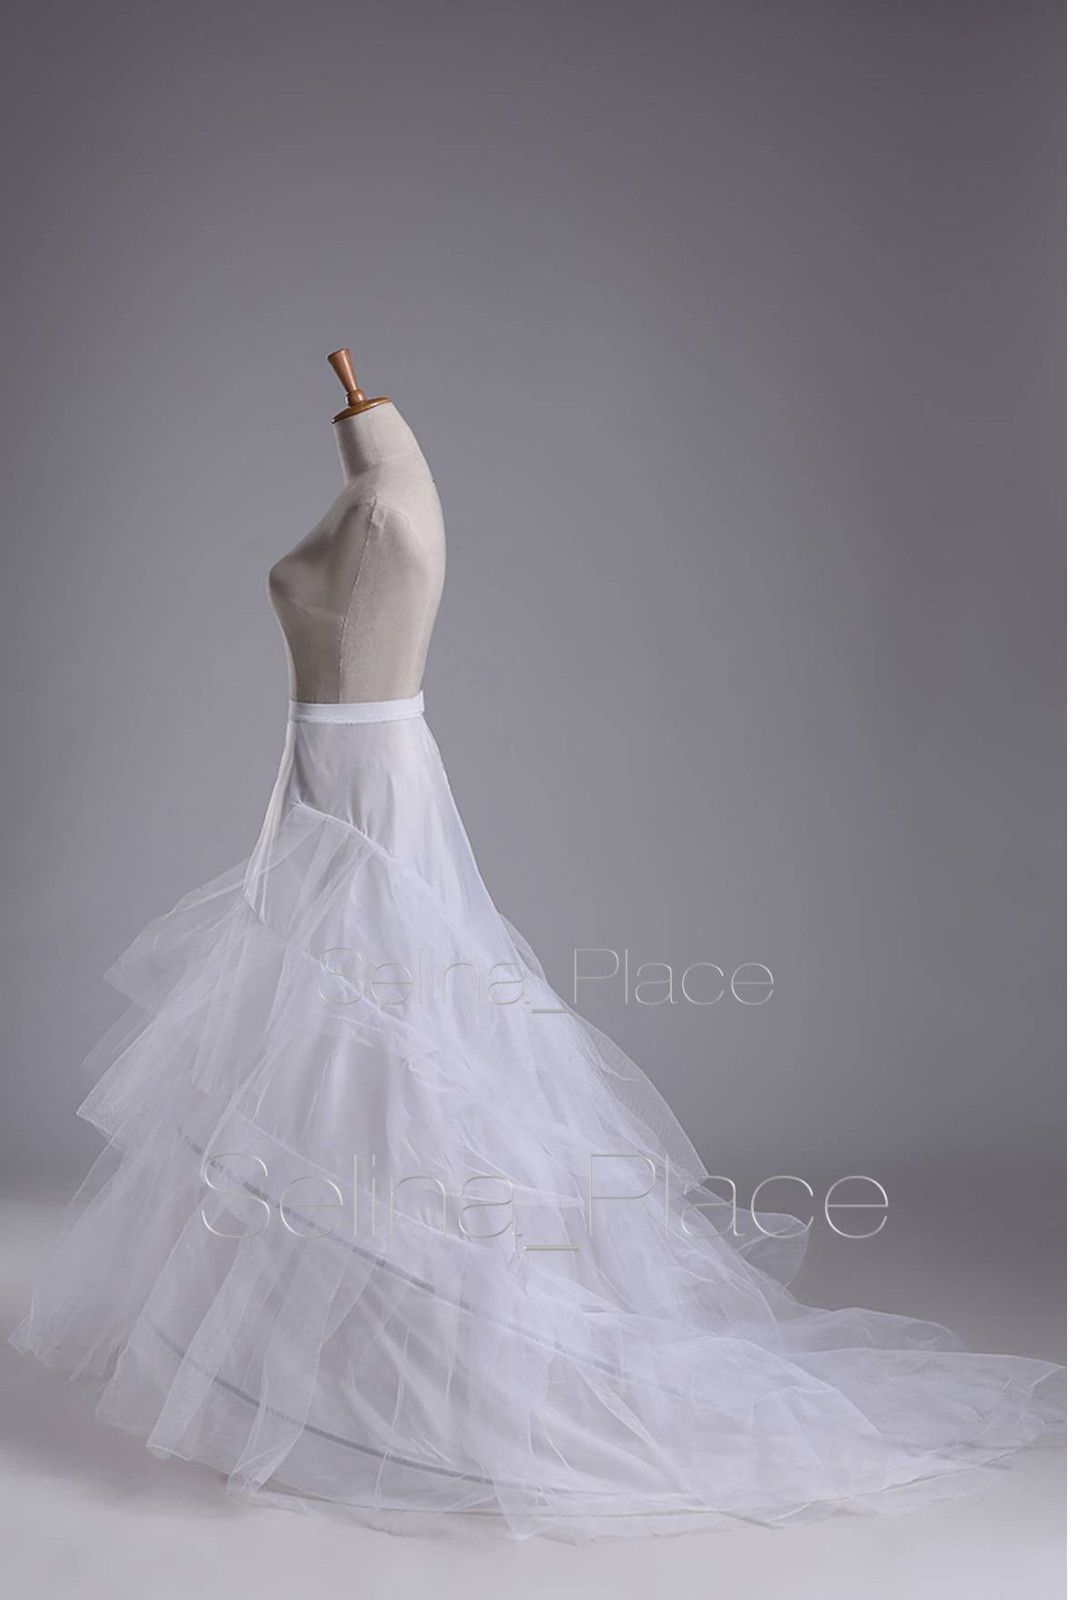 White 2 Hoop Train Wedding Dress Bridal Gown Crinoline Petticoat Skirt Slip